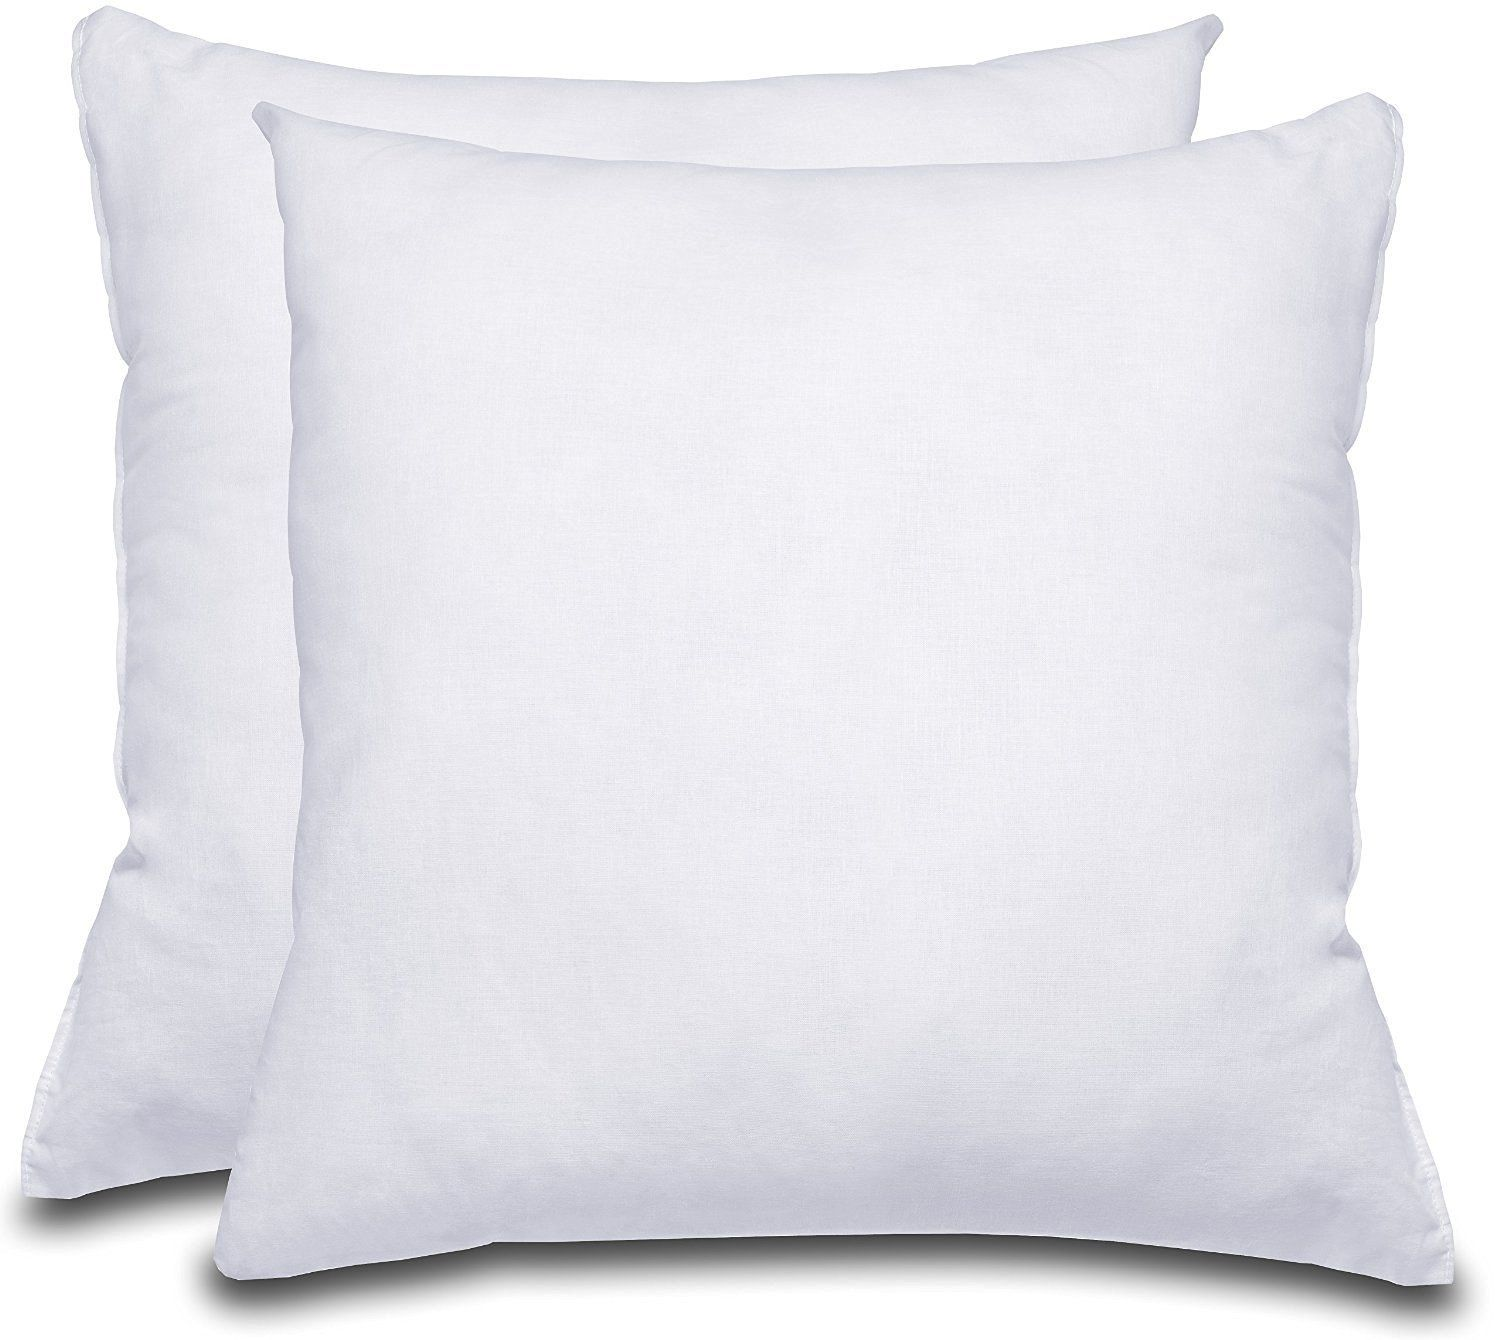 Decorative Pillow Insert Pack Of 2 White Square 18x18 Sofa And Bed Pillow Microfiber Cover Indoor White Pillows By Bed Pillows Pillows Bed Pillows Decorative